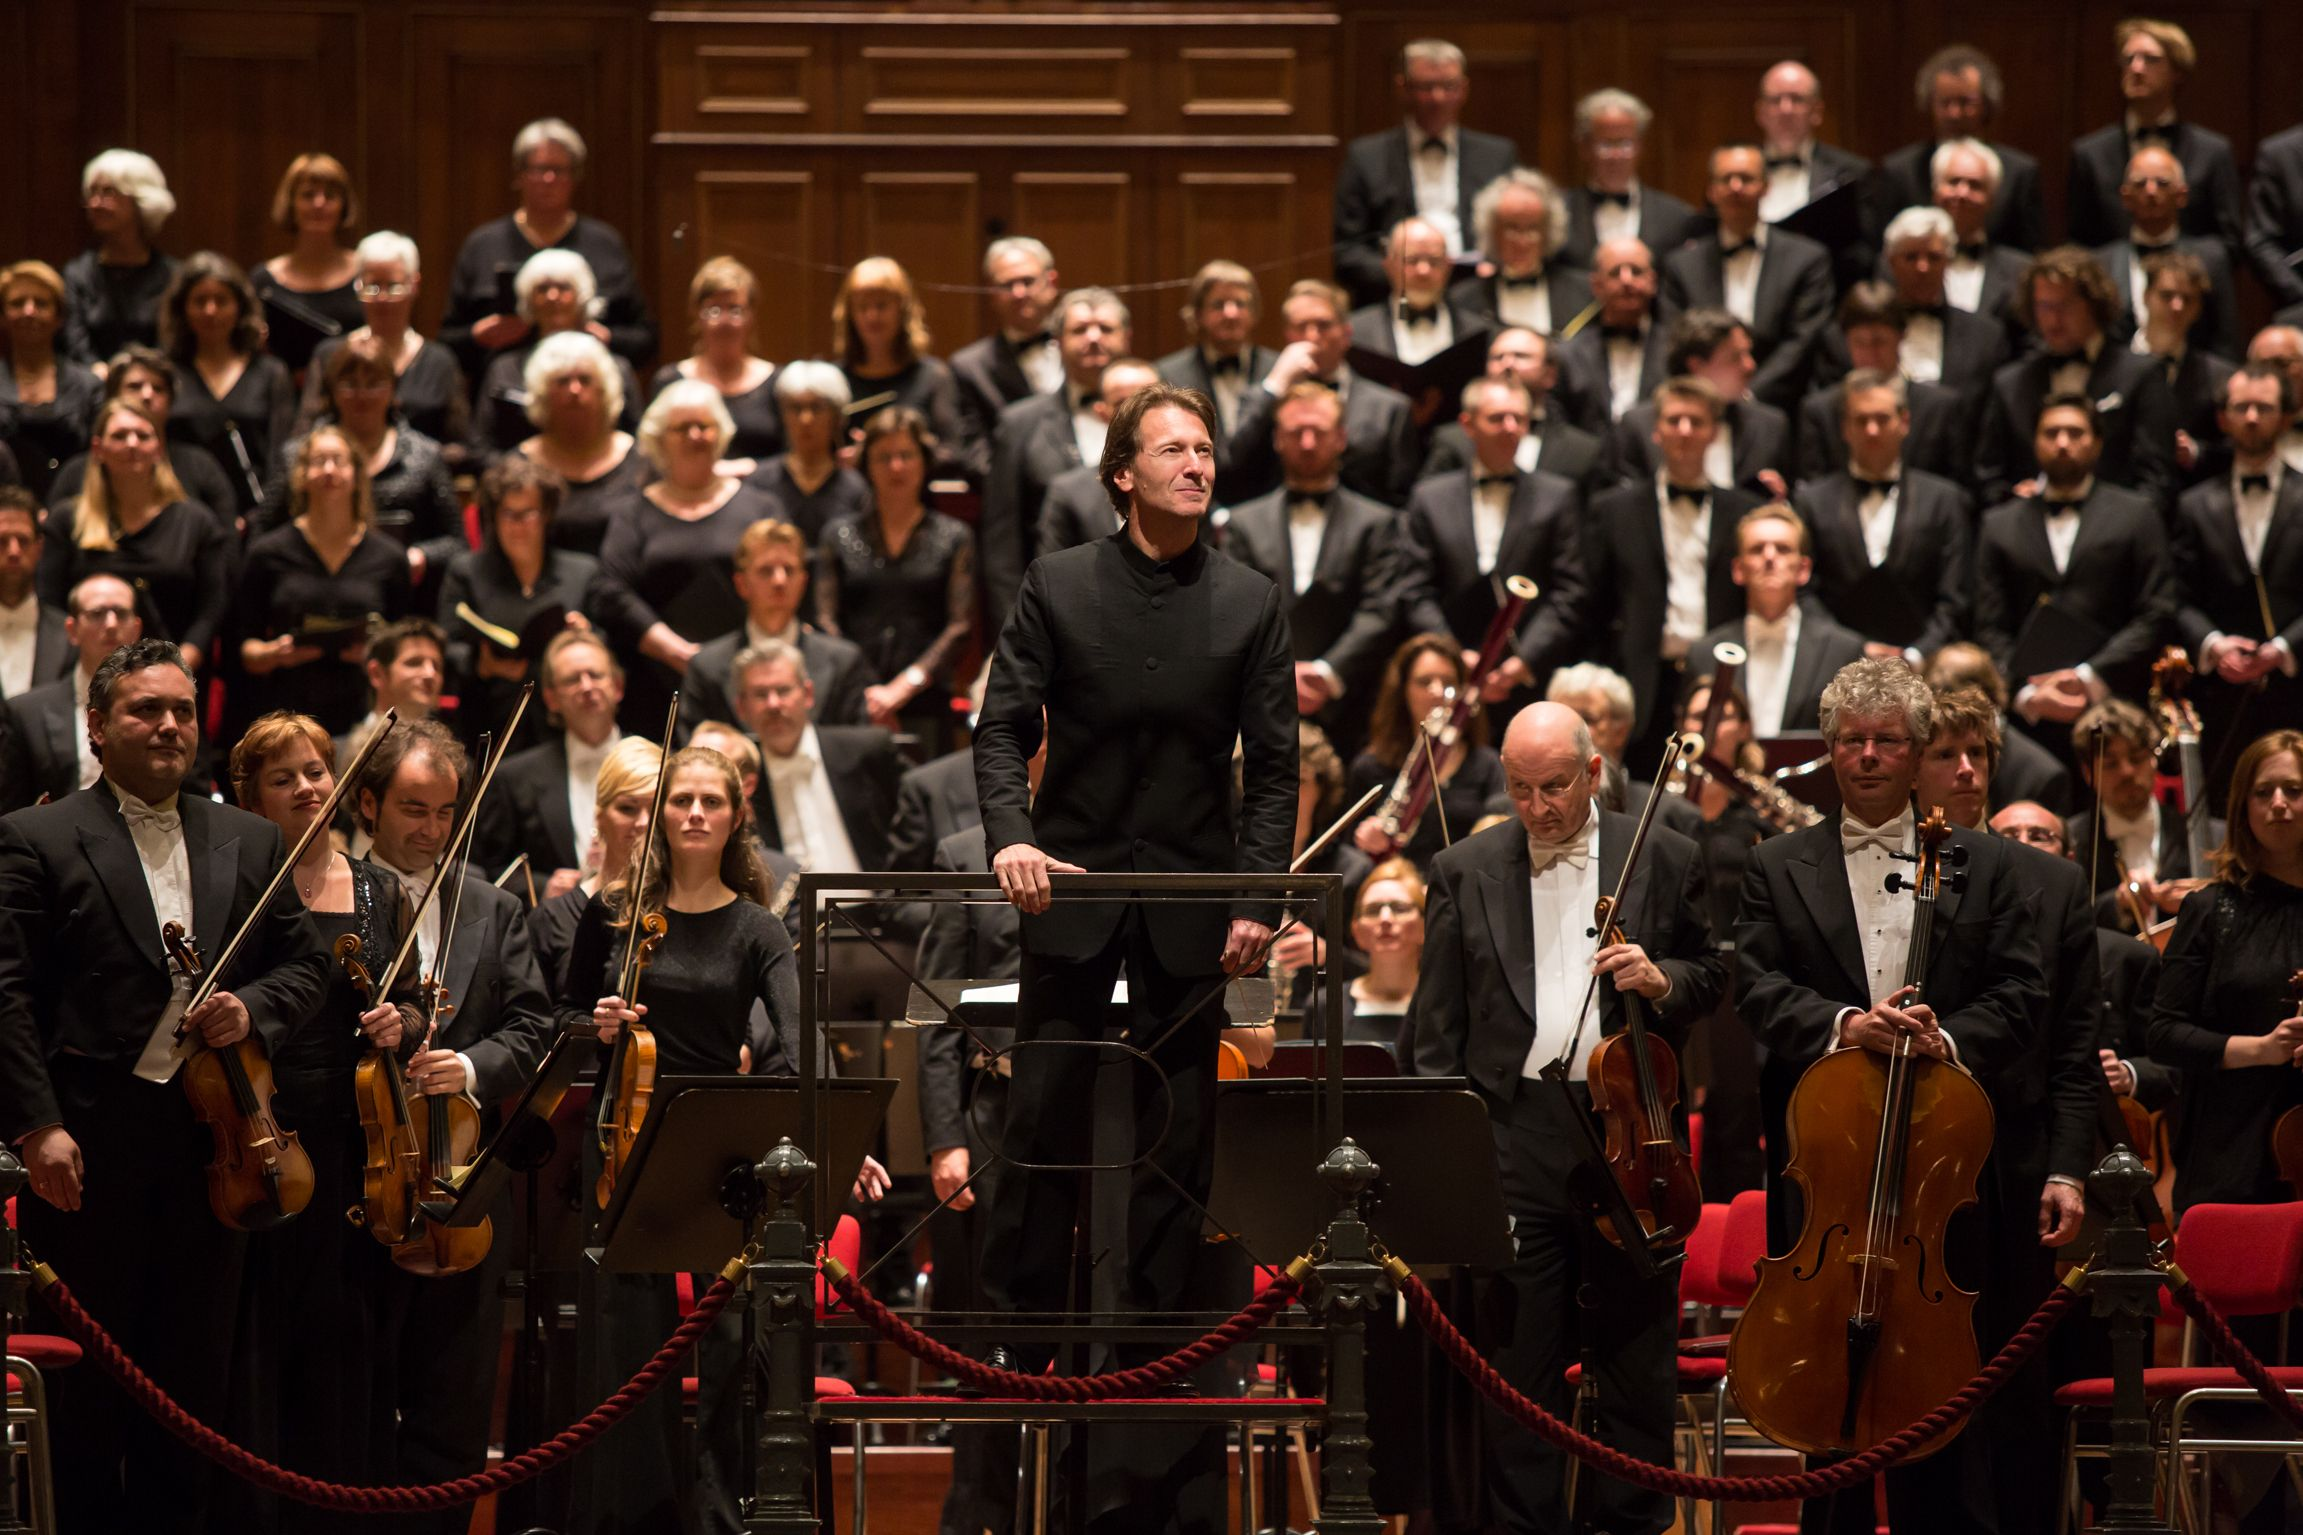 Marc Albrecht and the Netherlands Philharmonic Orchestra played Berlioz Requiem at the Concertgebouw Amsterdam